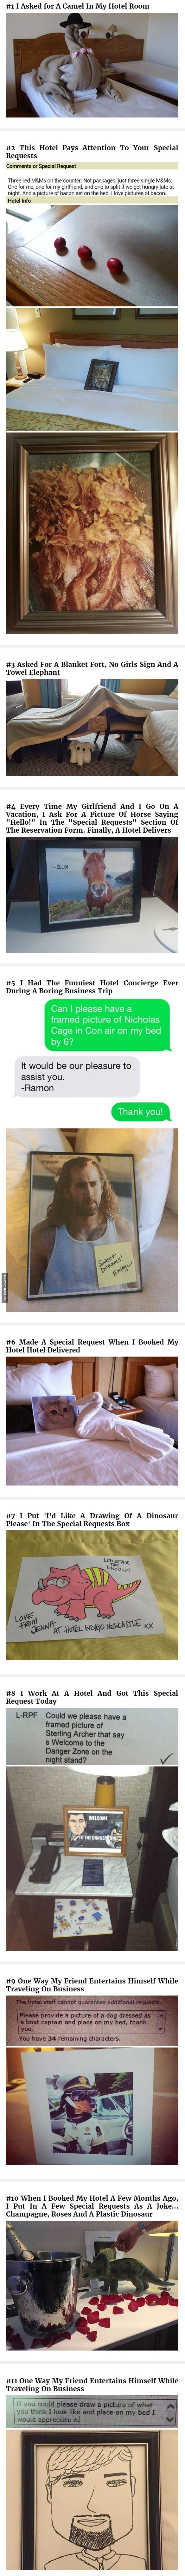 These Guys Trolled Hotel Staff With Ridiculous Room Requests, And The Hotels Delivered - The Best Funny Pictures